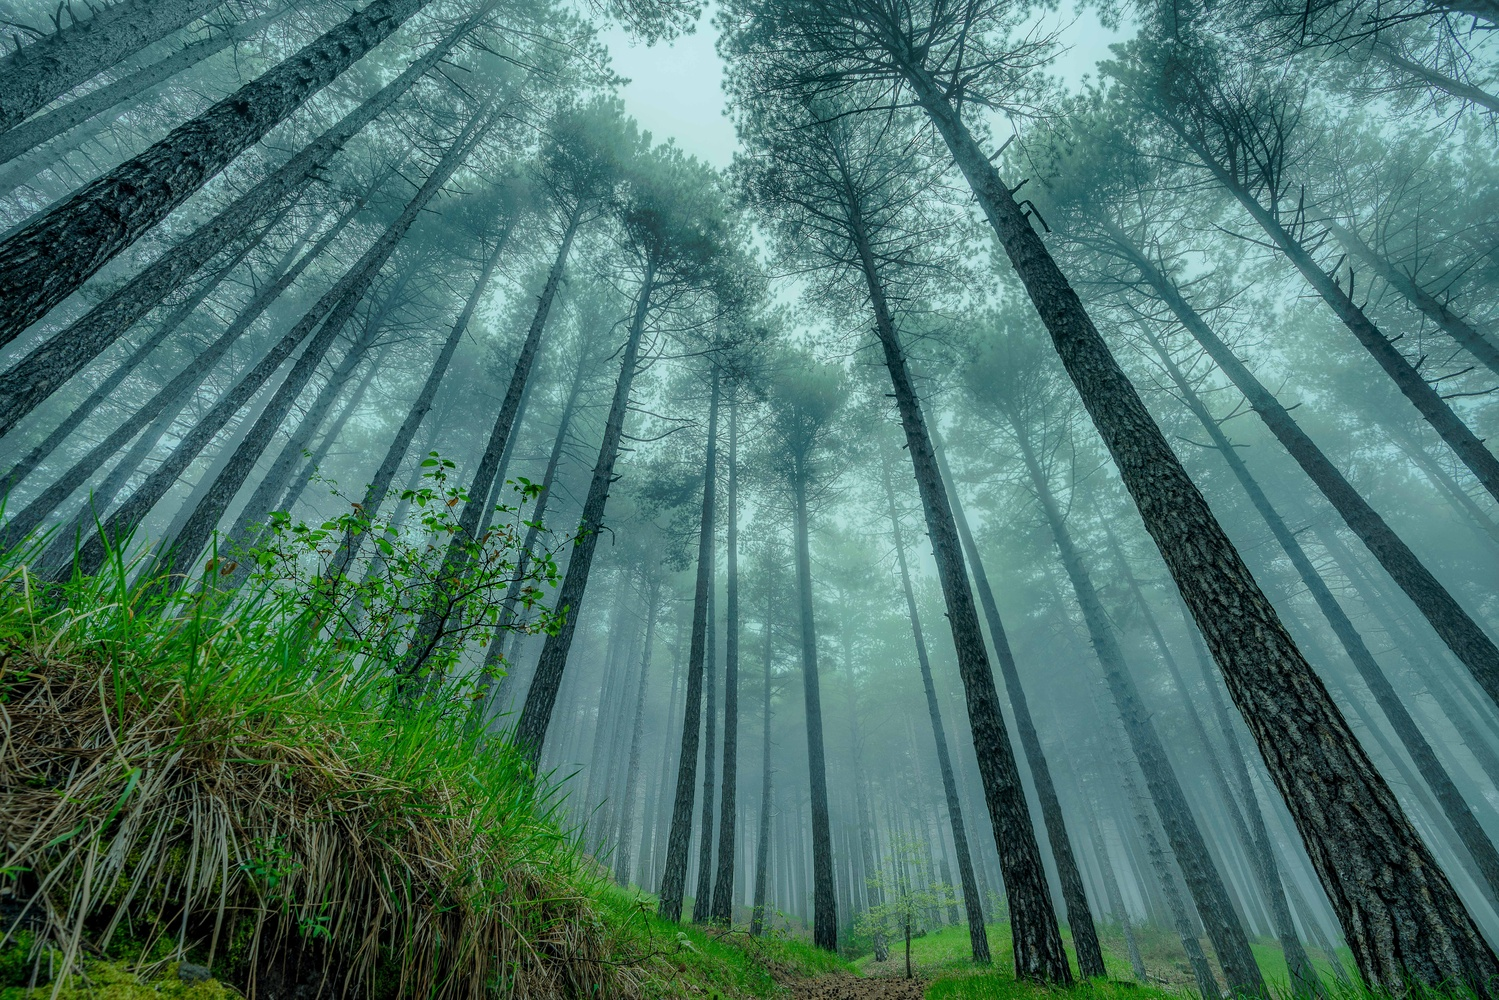 Mysterious Forest by Thijs Spuijbroek